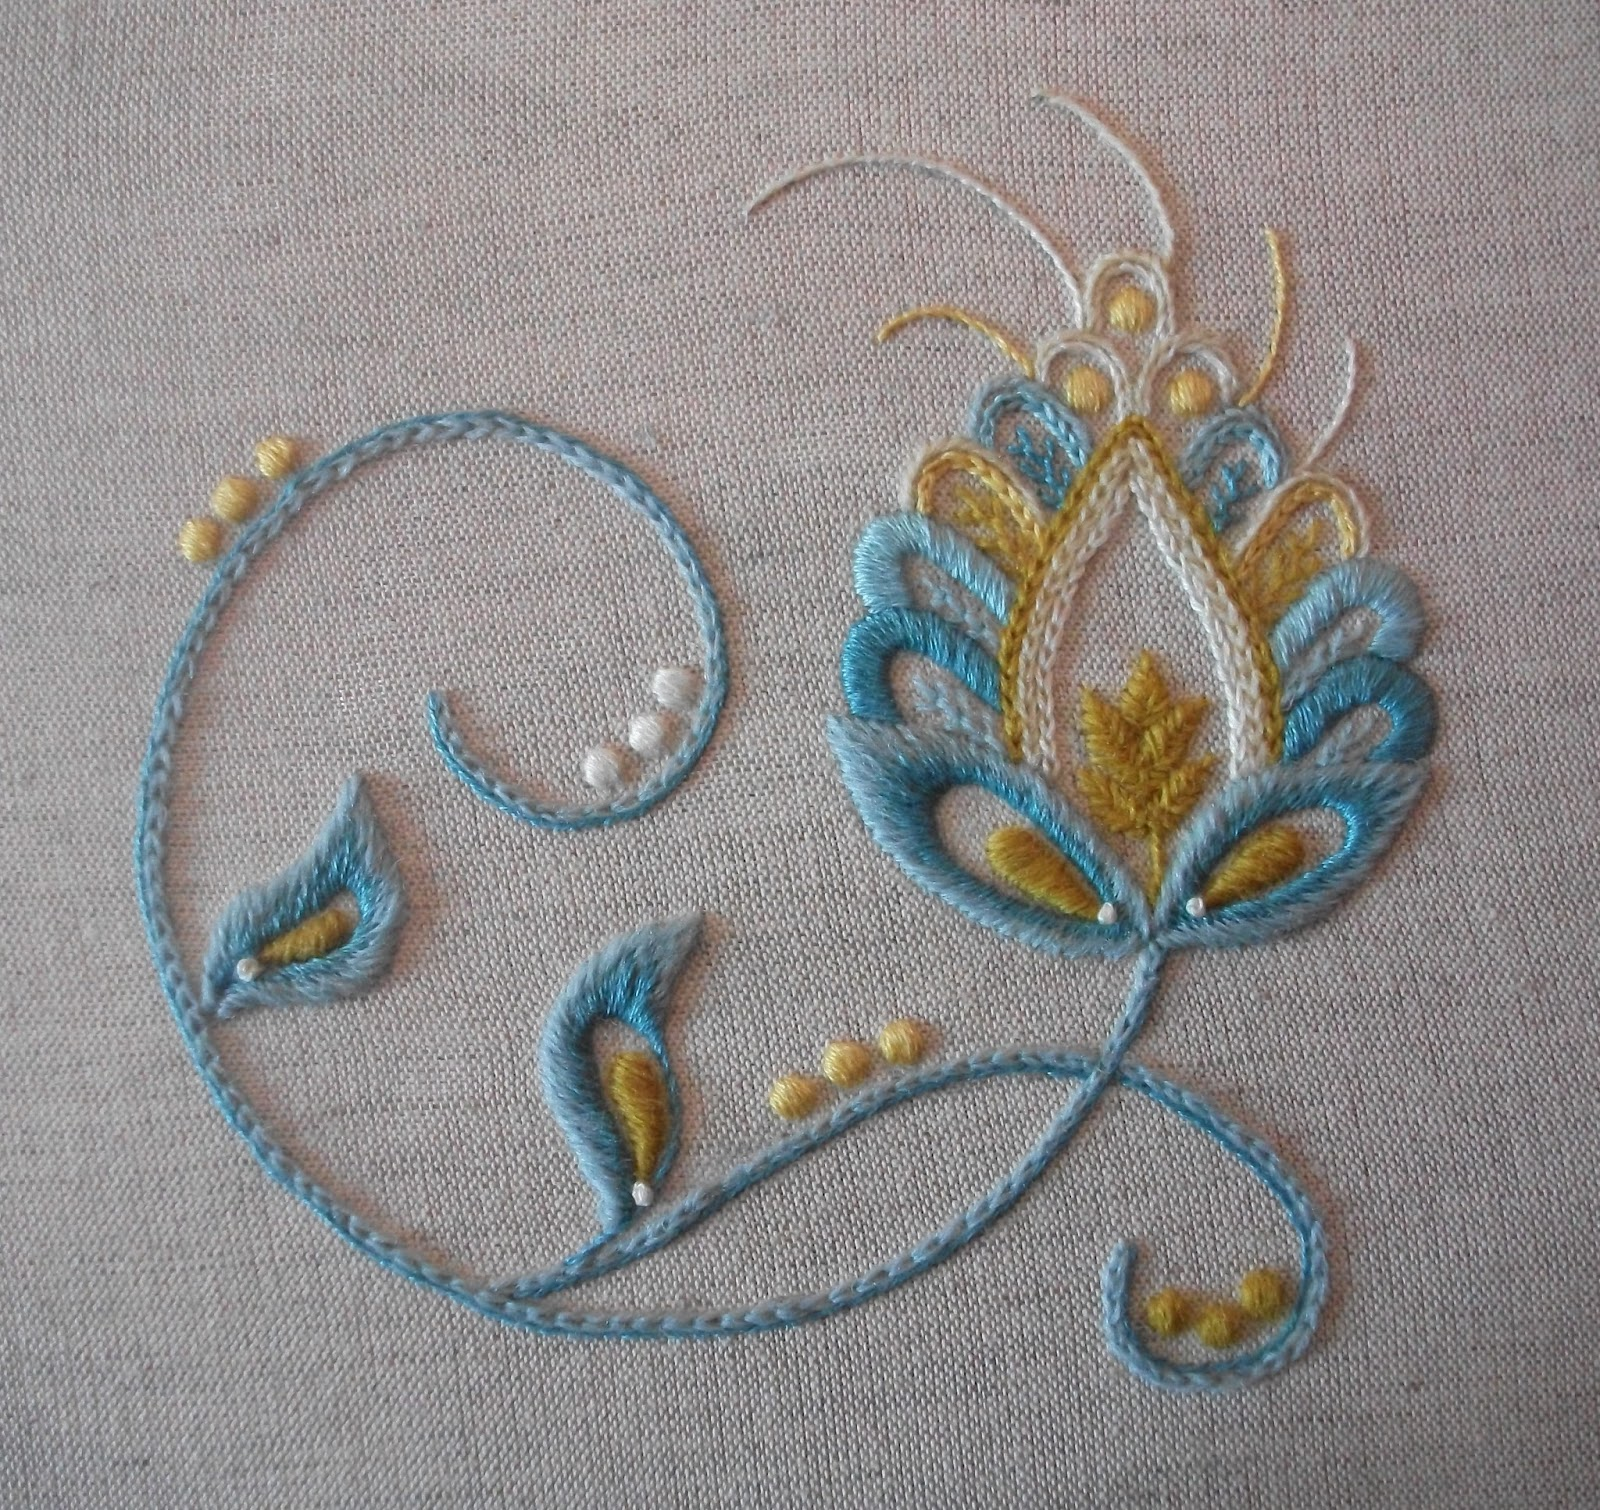 News from vine embroidery new mixed thread kits